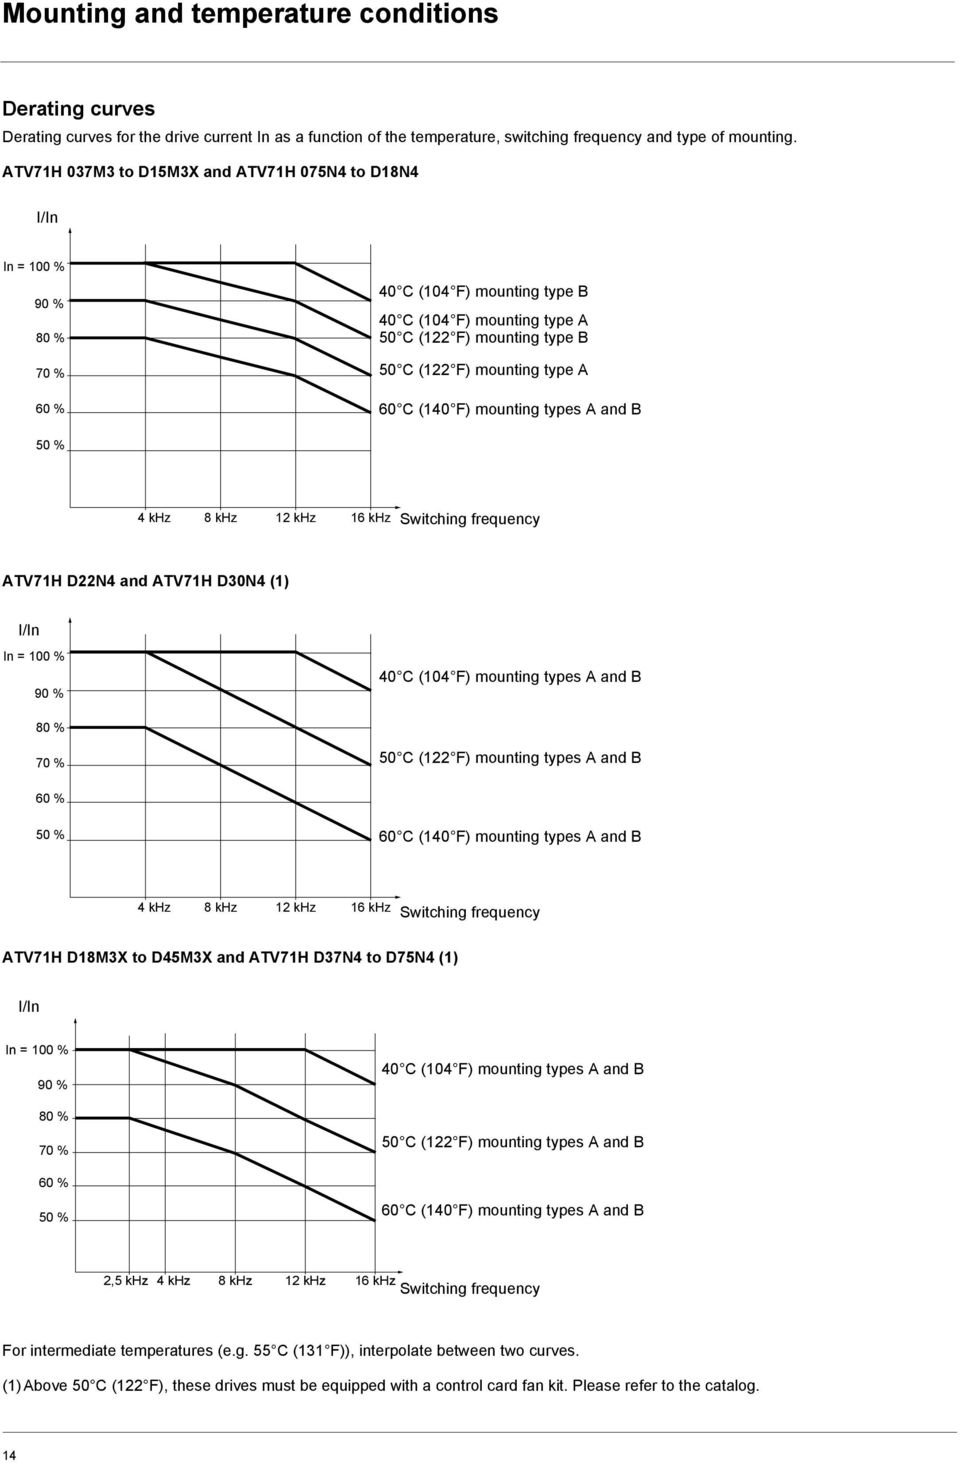 Altivar 71 Variable Speed Drives For Synchronous Motors And 61 Control Wiring Diagram A 60 C 140 F Mounting Types B 50 4 Khz